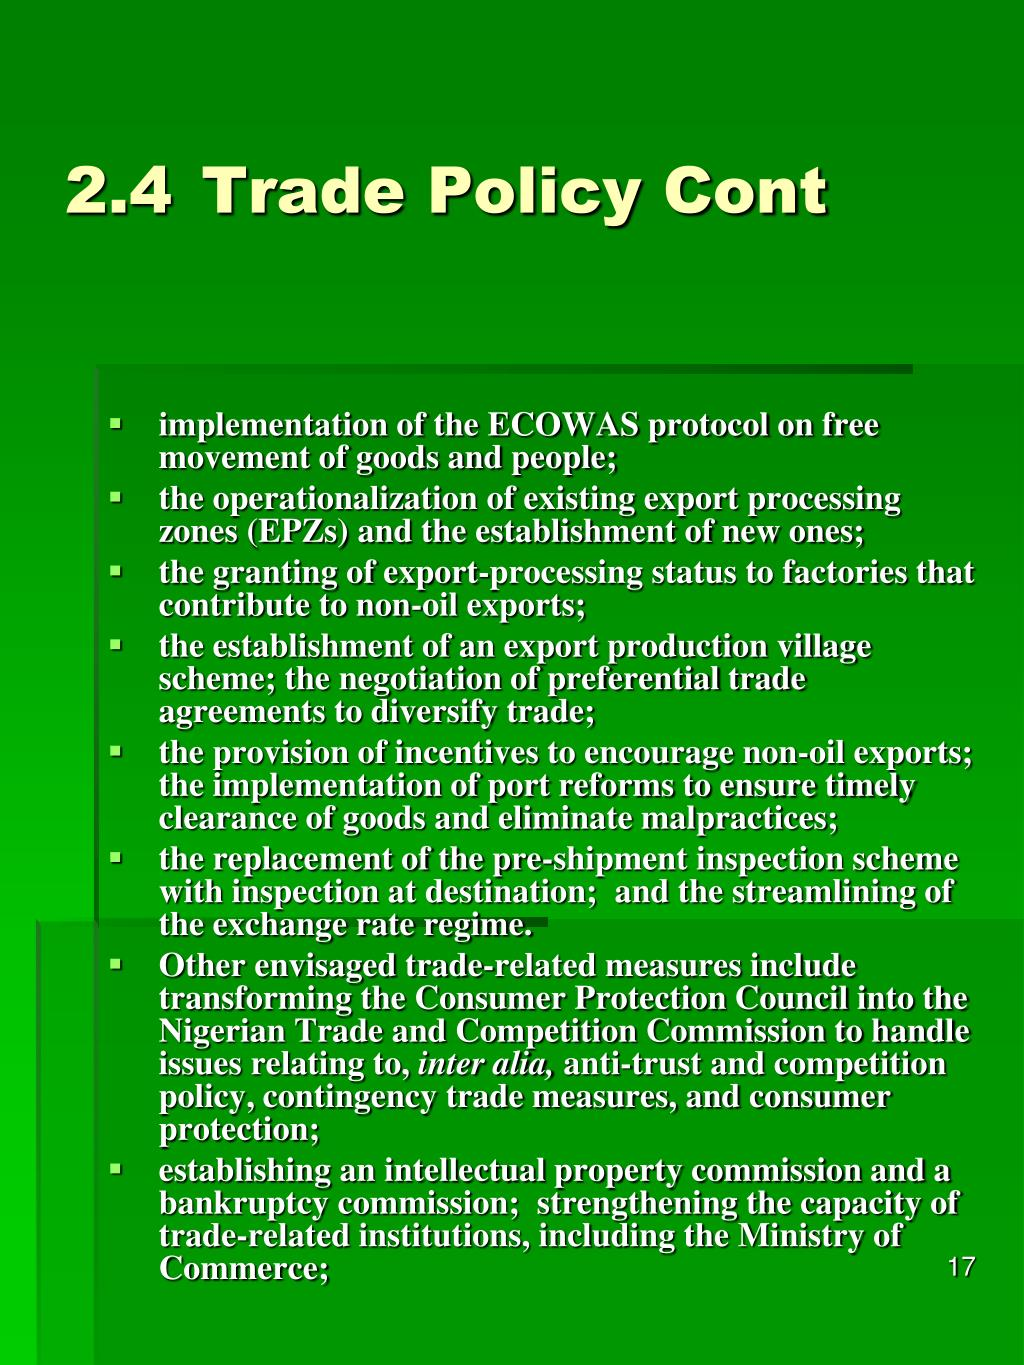 2.4Trade Policy Cont